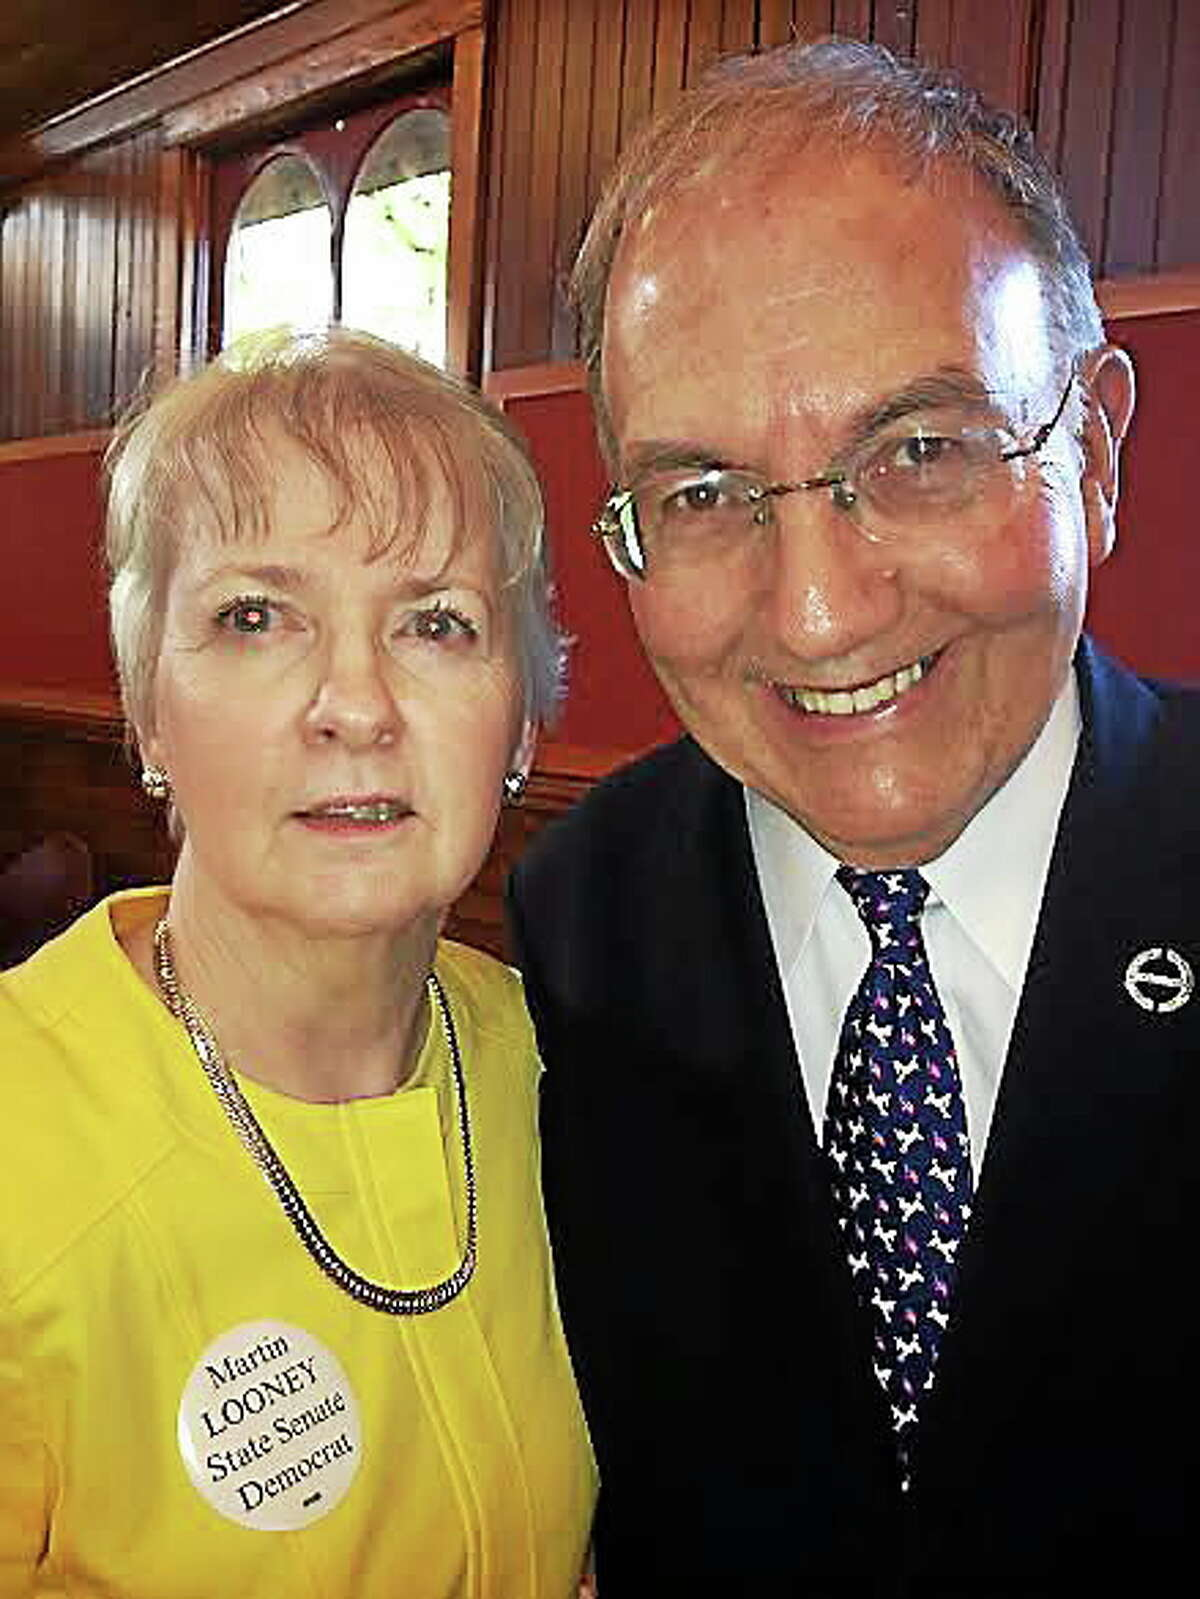 State Sen. Martin Looney with his wife, Ellen. Looney was nominated for 12th senate term Monday.